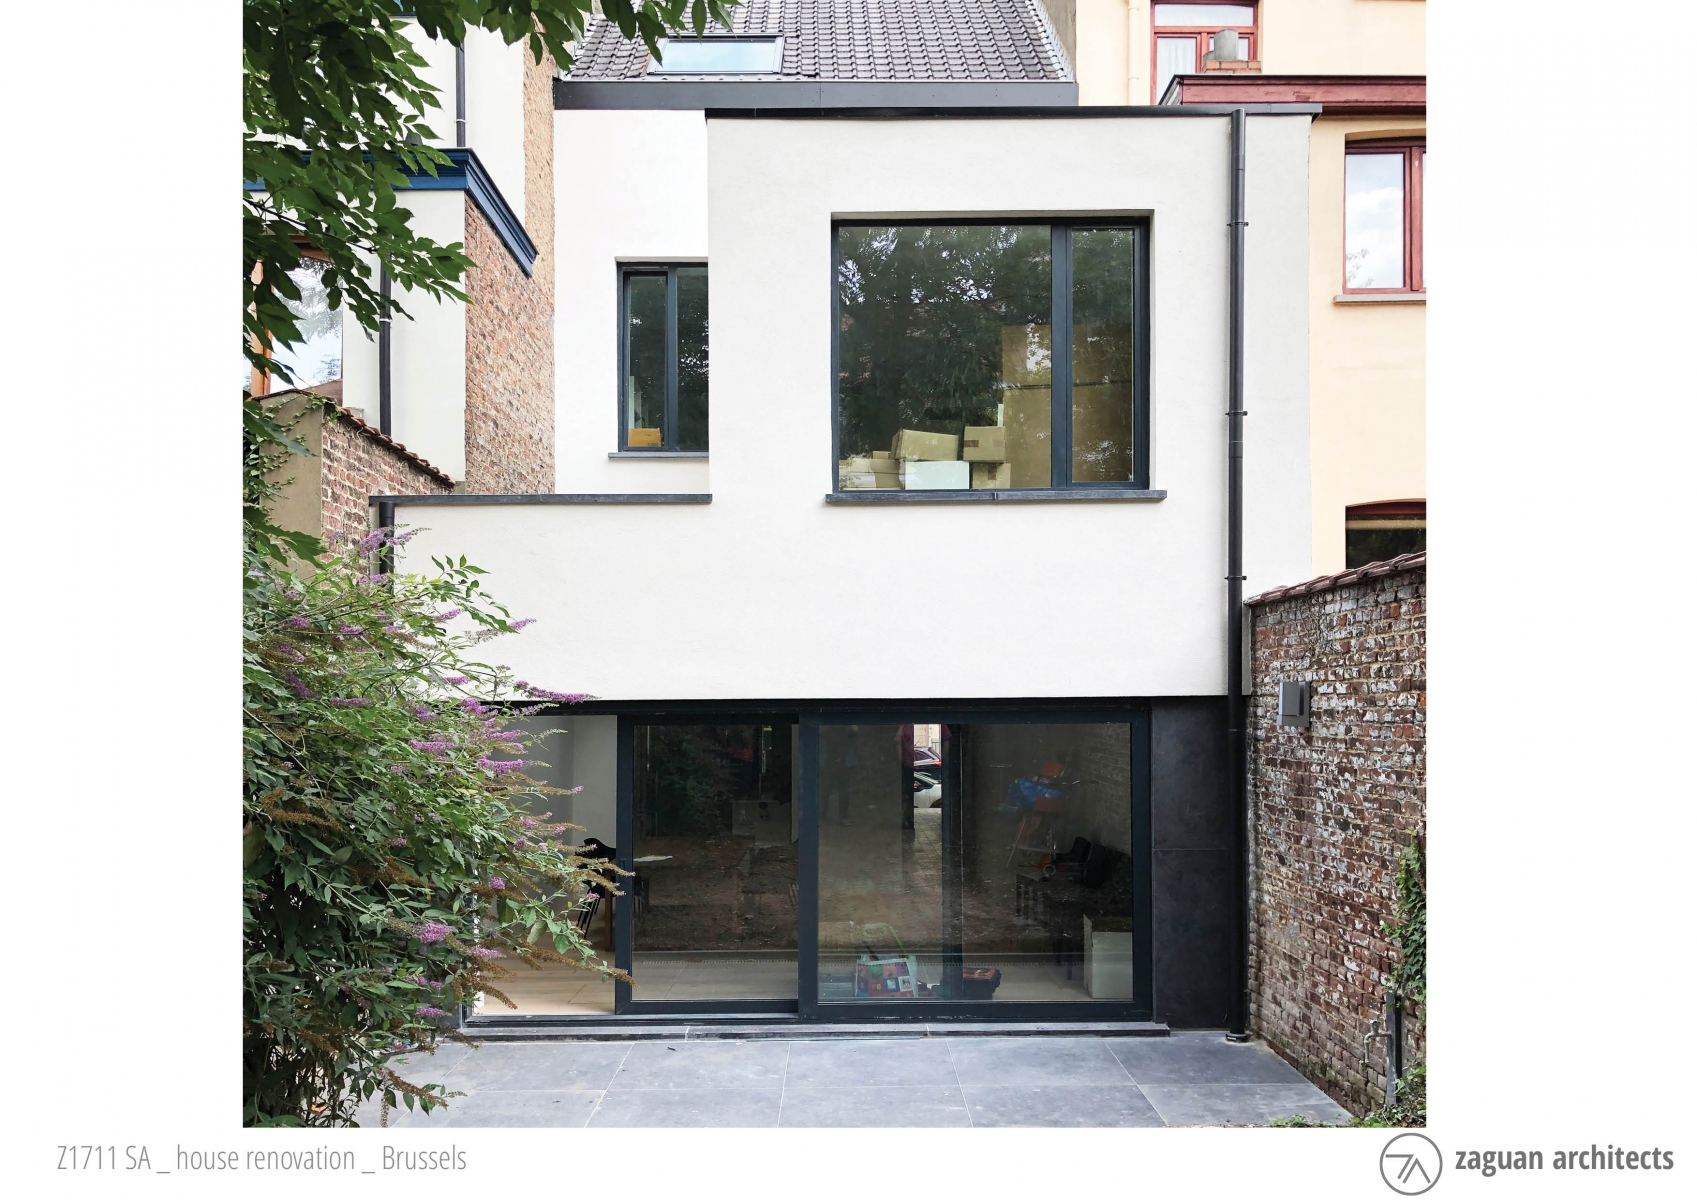 andres gonzalez gil zaguanarchitects house renovation brussels Z1711 01